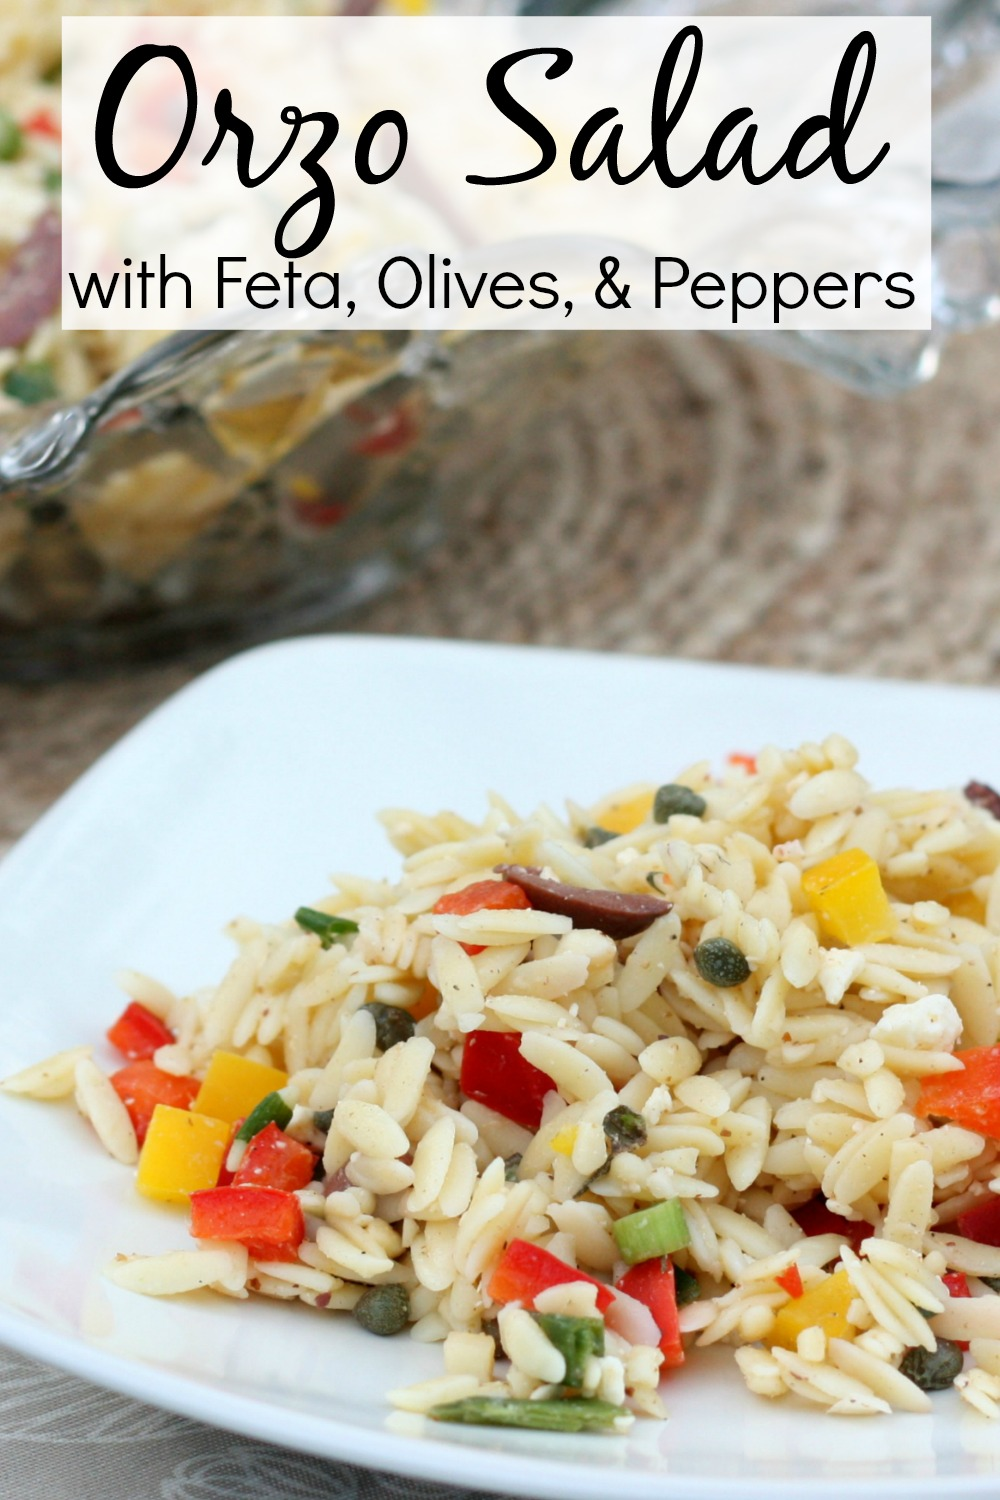 Orzo Salad with Feta, Olives, and Peppers - This delicious salad is tasty and a real crowd pleaser.  #vegetariansalad #saladrecipe #orzosalad via @spaula